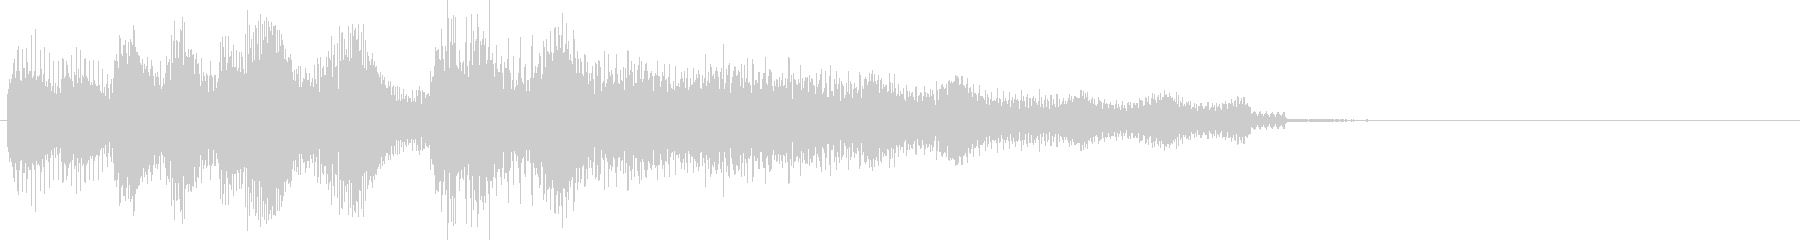 Comical and mysterious jingle # 1's unreproduced waveform